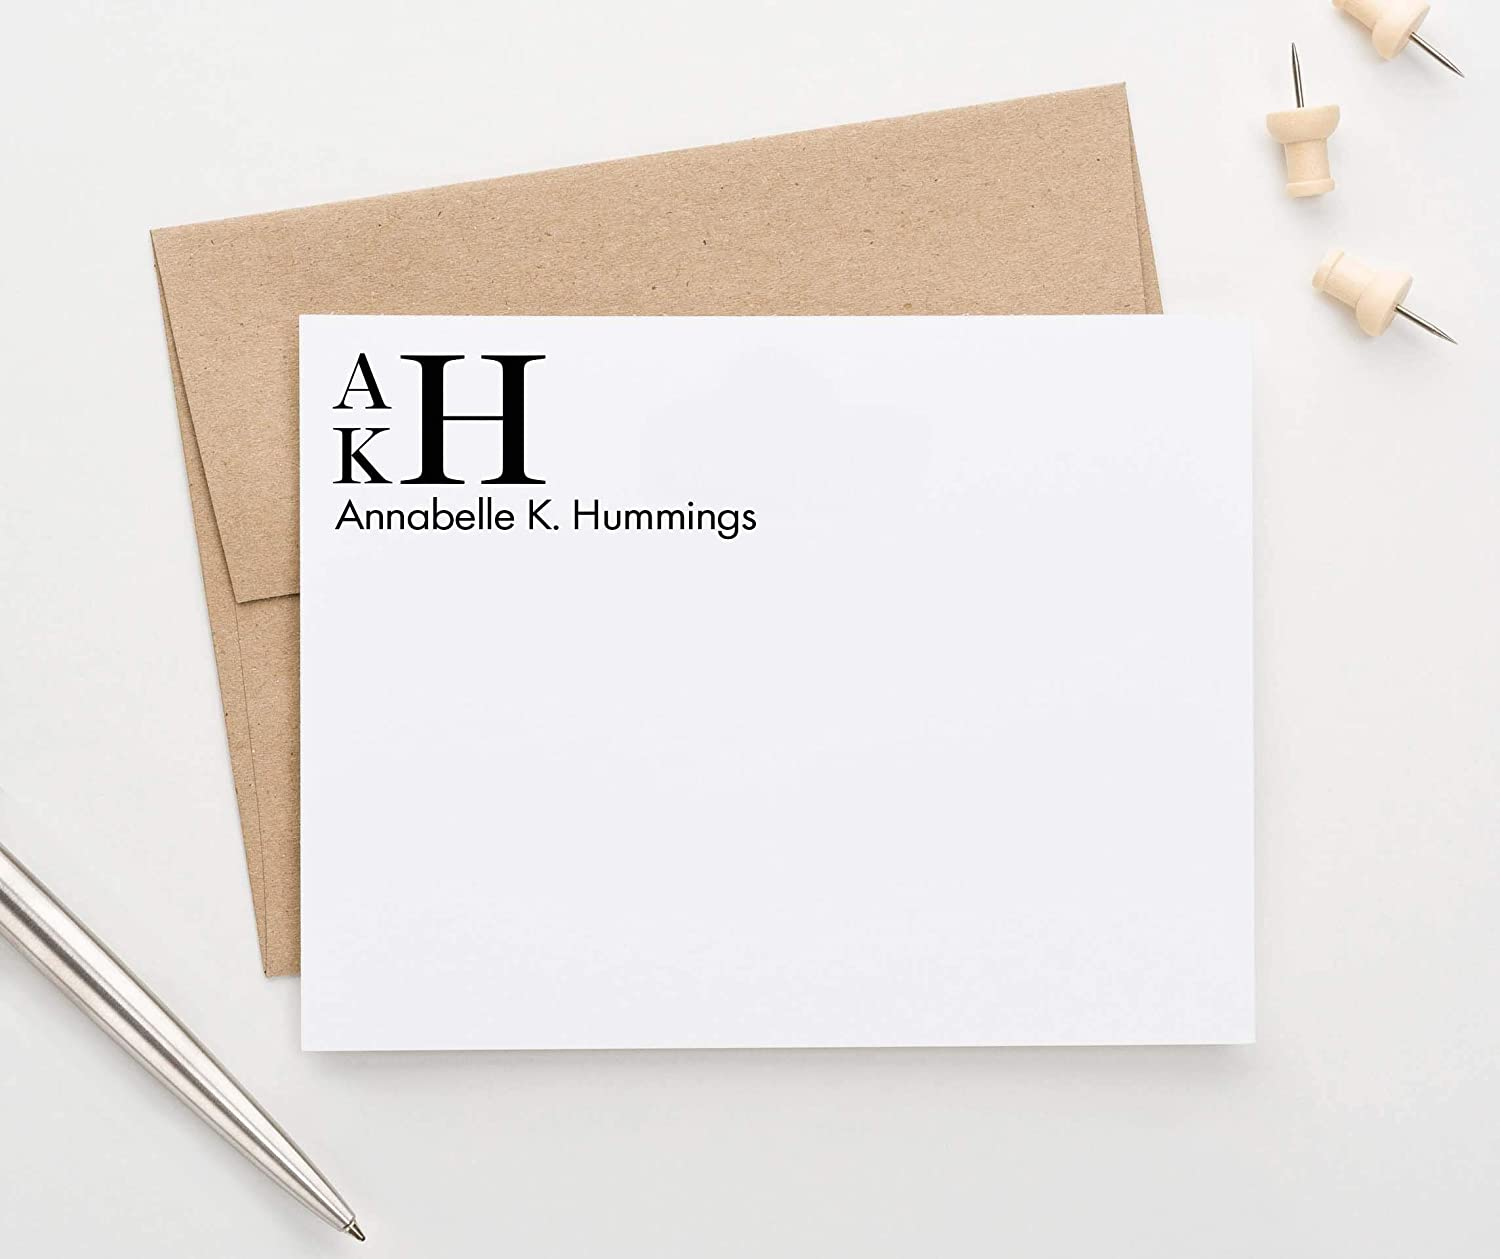 Personalized Stationery Set Letterpress Cards with Digital Personalized Name or Monogram for a Girl or Boy!